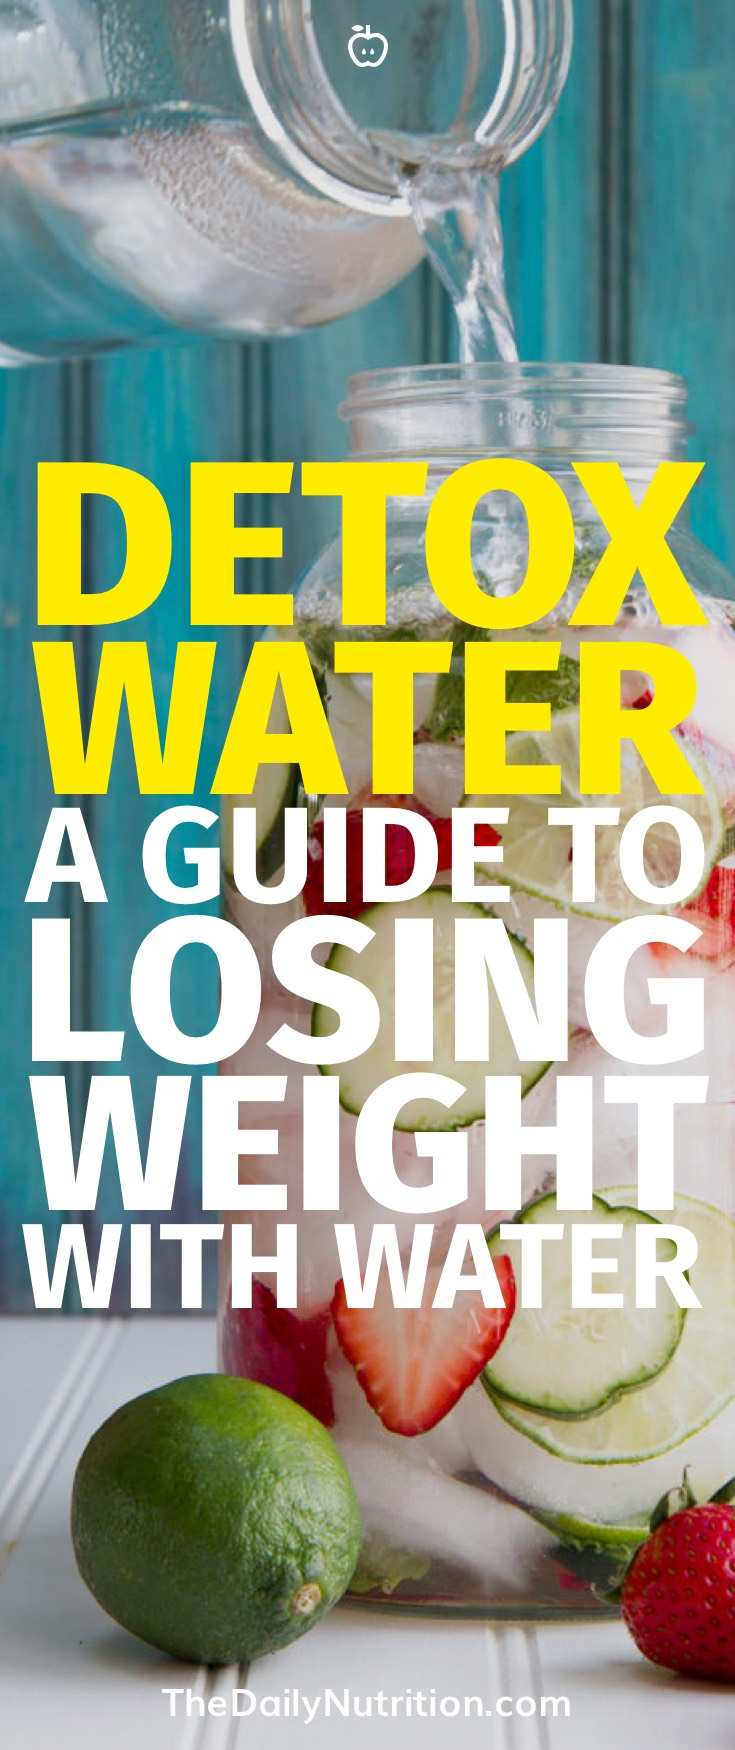 Drinking a detox water is a great way to cleanse toxins from your body and lose weight. They also taste great and are a great replacement for sugary drinks.